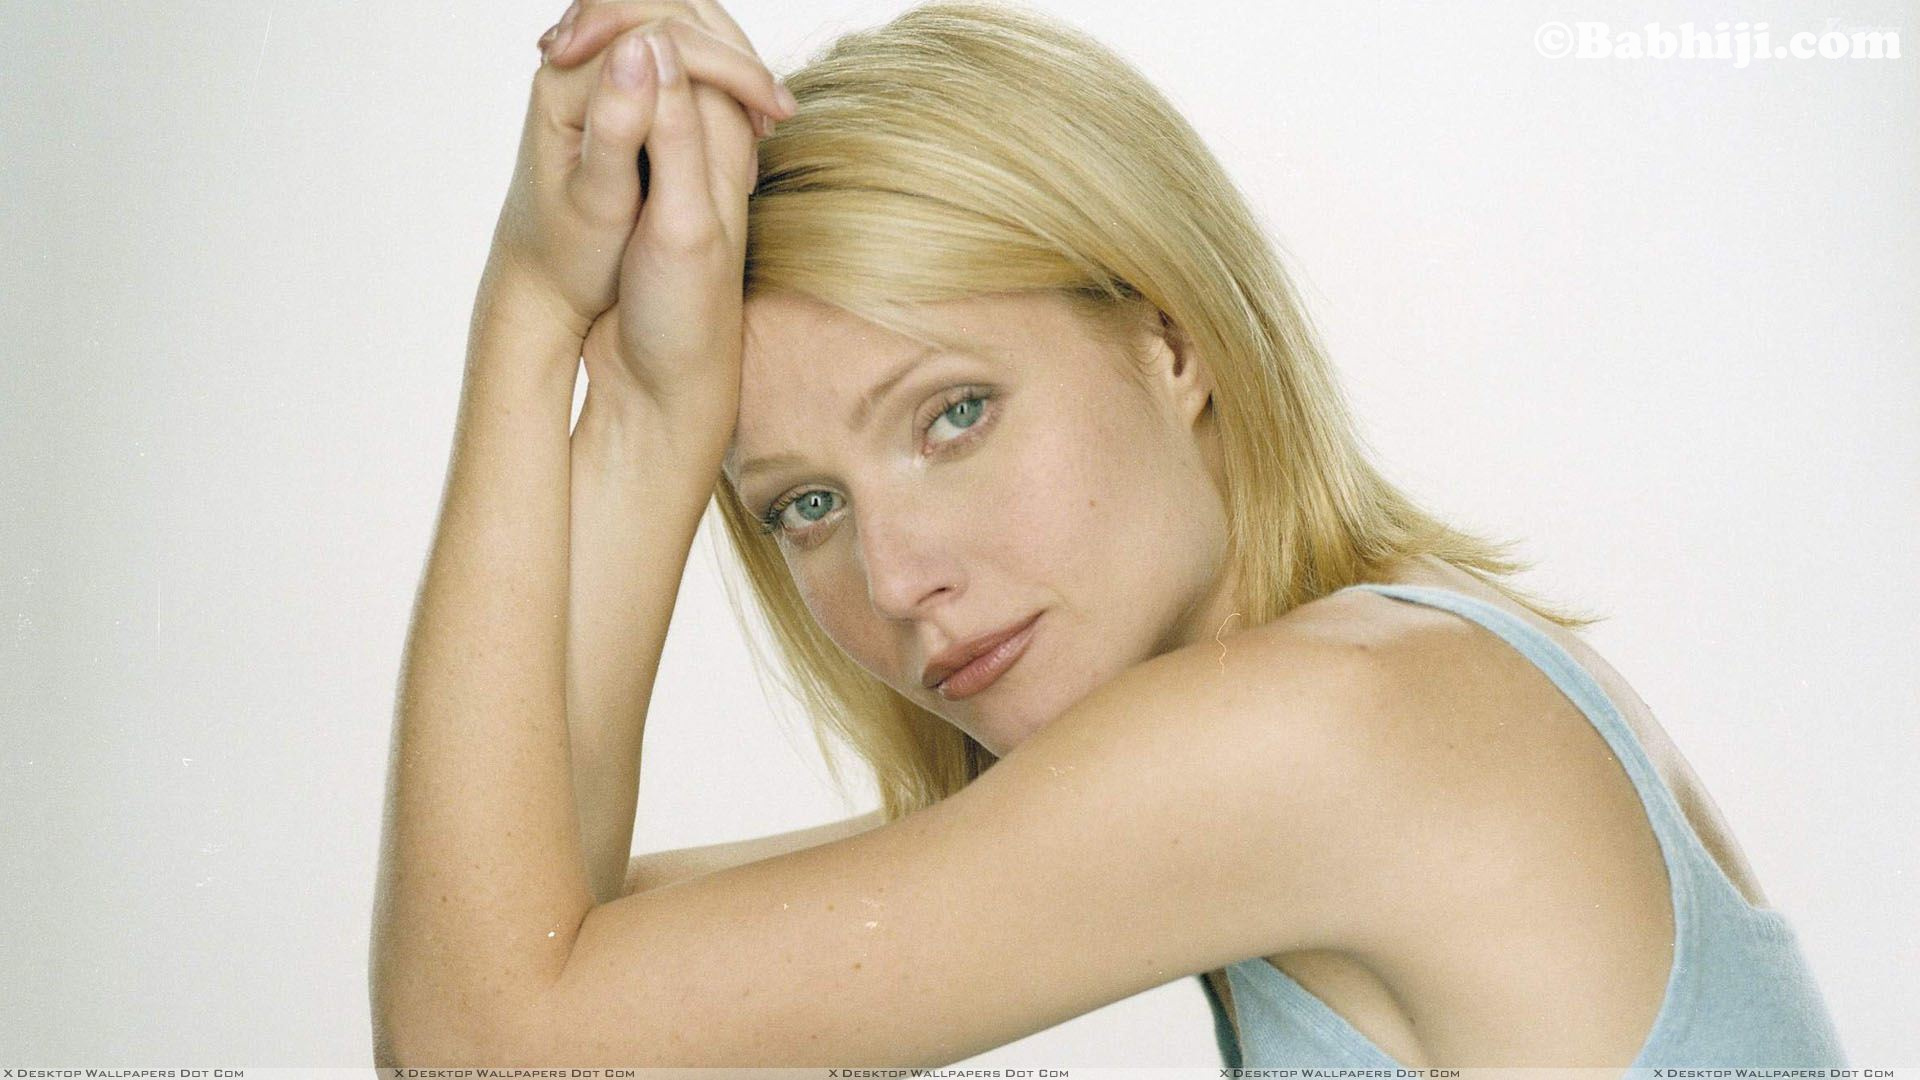 Gwyneth Paltrow, Gwyneth Paltrow Wallpaper, Gwyneth Paltrow Photo, Gwyneth Paltrow Images